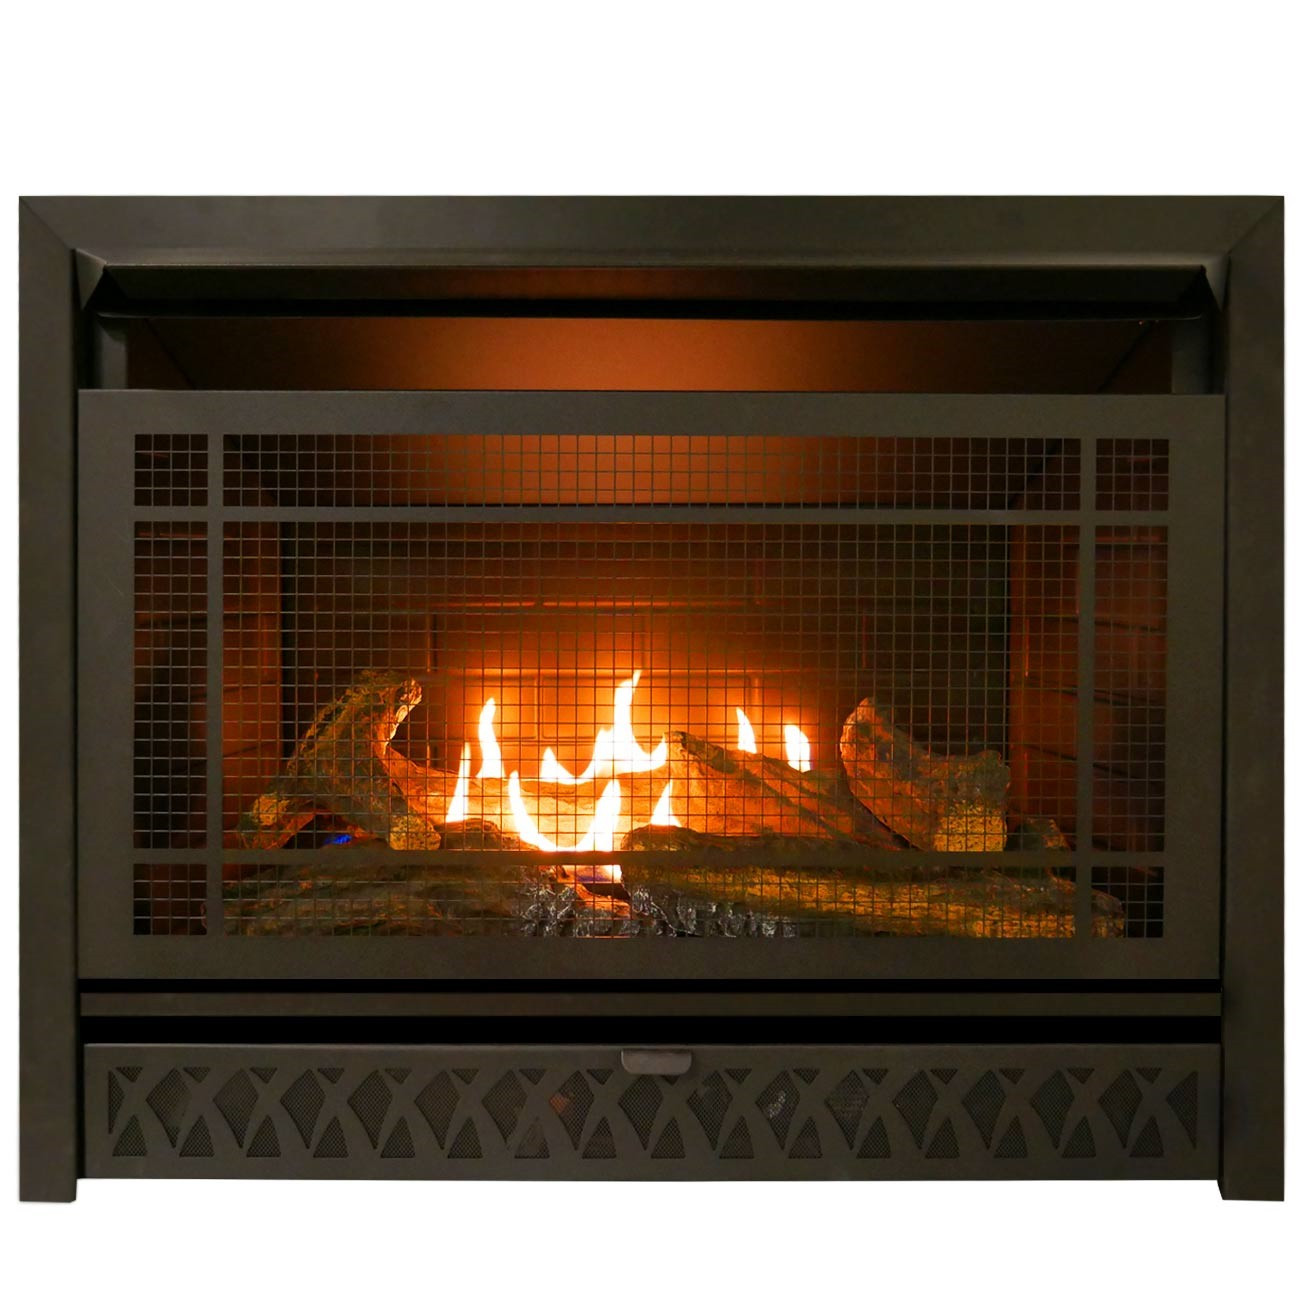 Best ideas about Propane Fireplace Inserts . Save or Pin Gas Fireplace Insert Dual Fuel Technology 26 000 BTU Now.